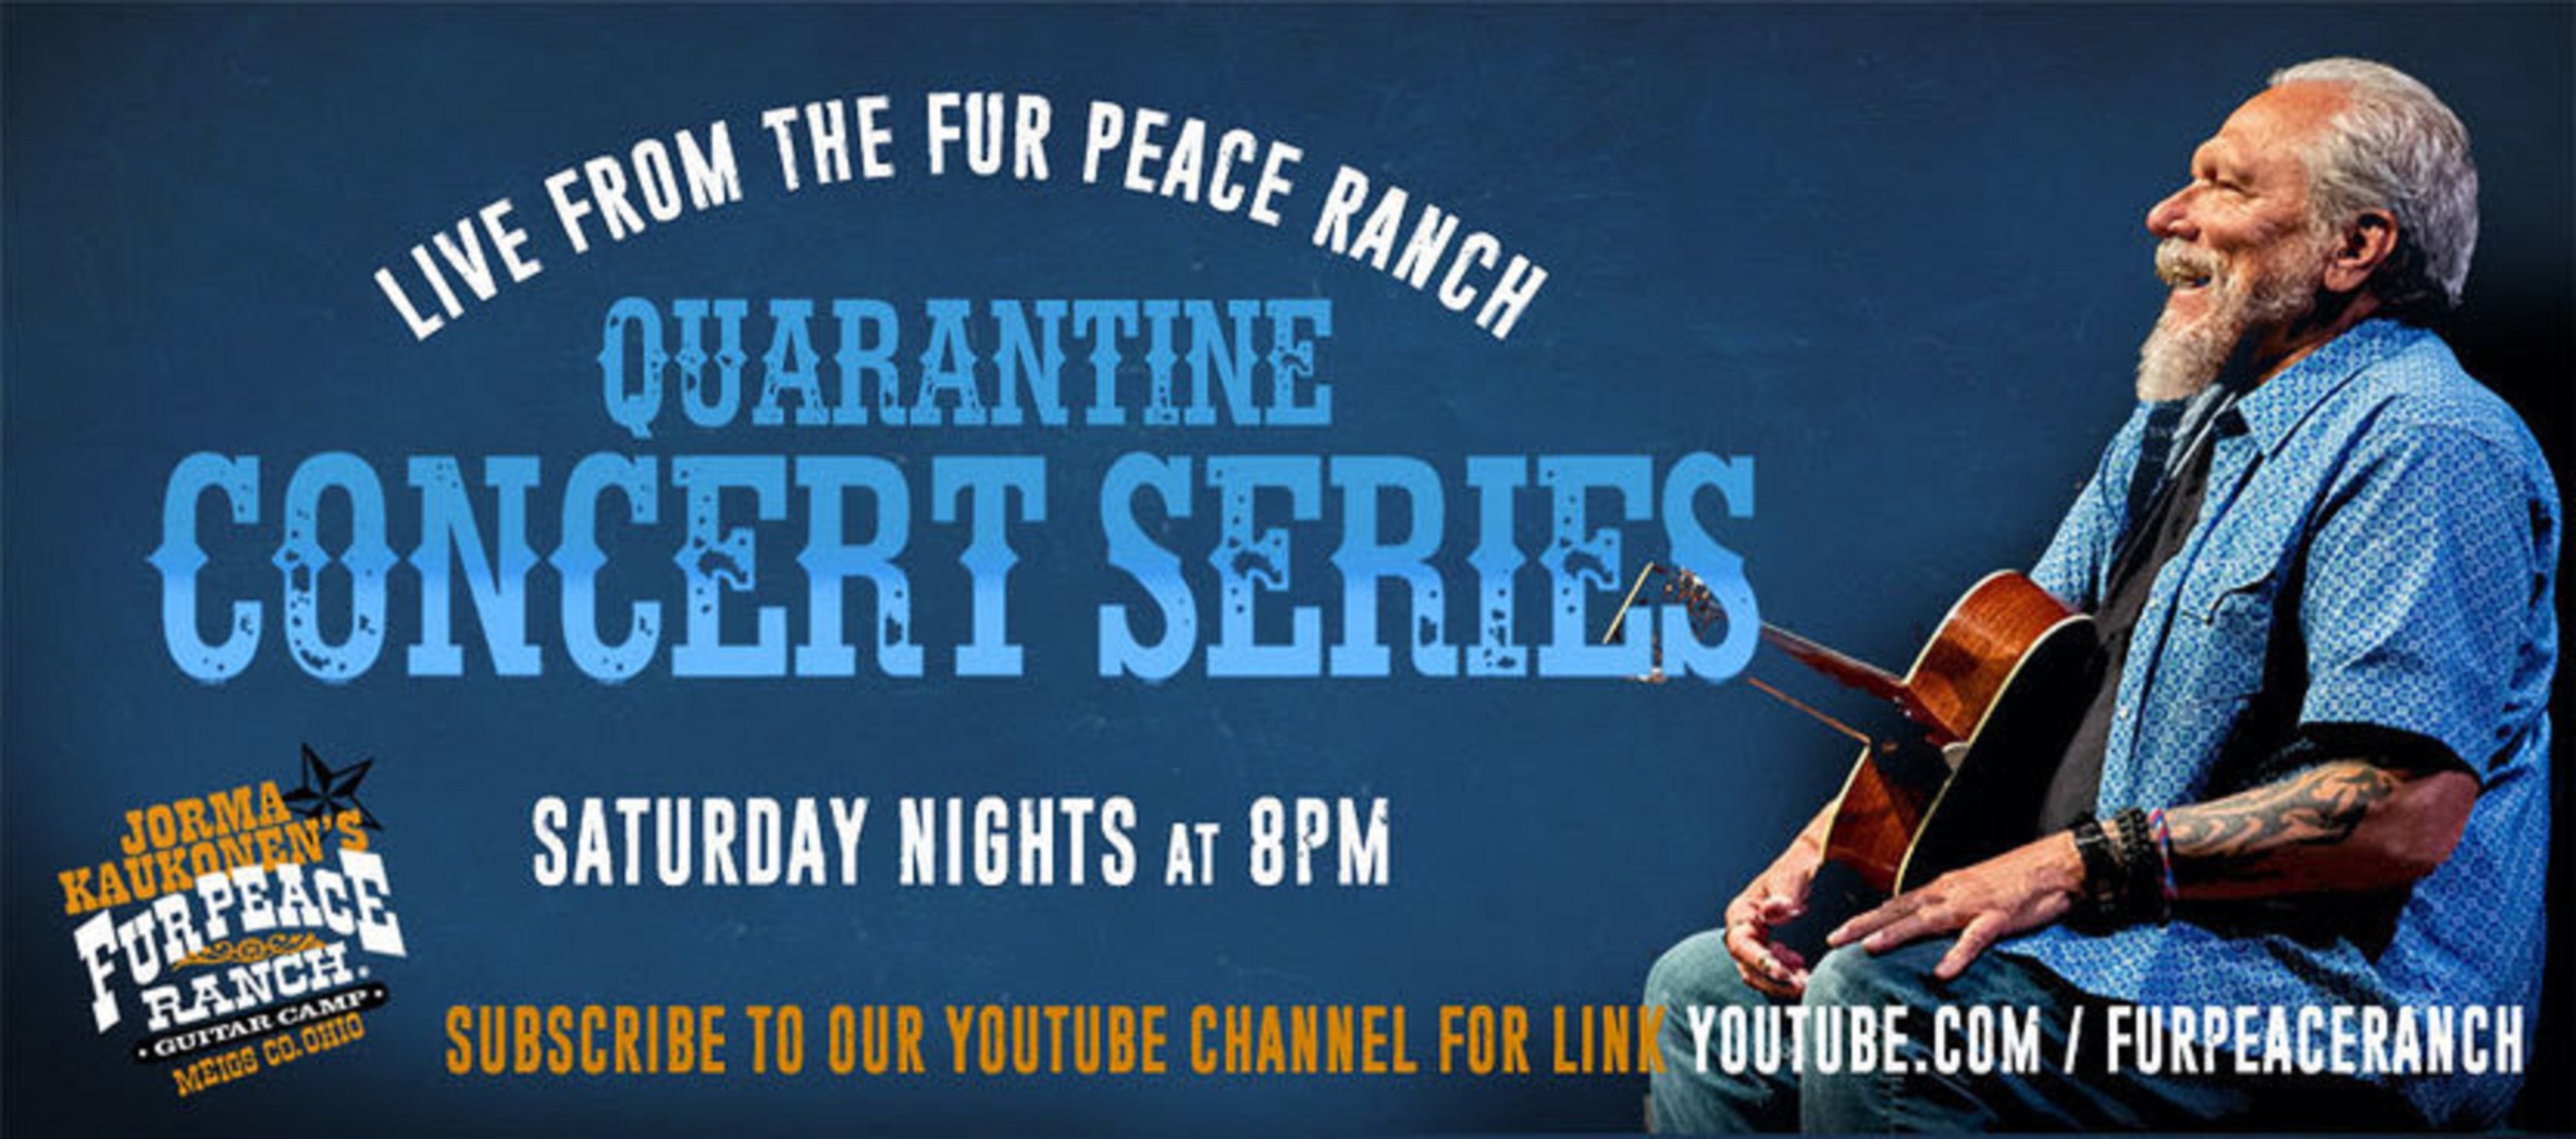 Celebrating the One-Year Anniversary of Jorma Kaukonen's Free Quarantine Concerts broadcast live from the Fur Peace Ranch